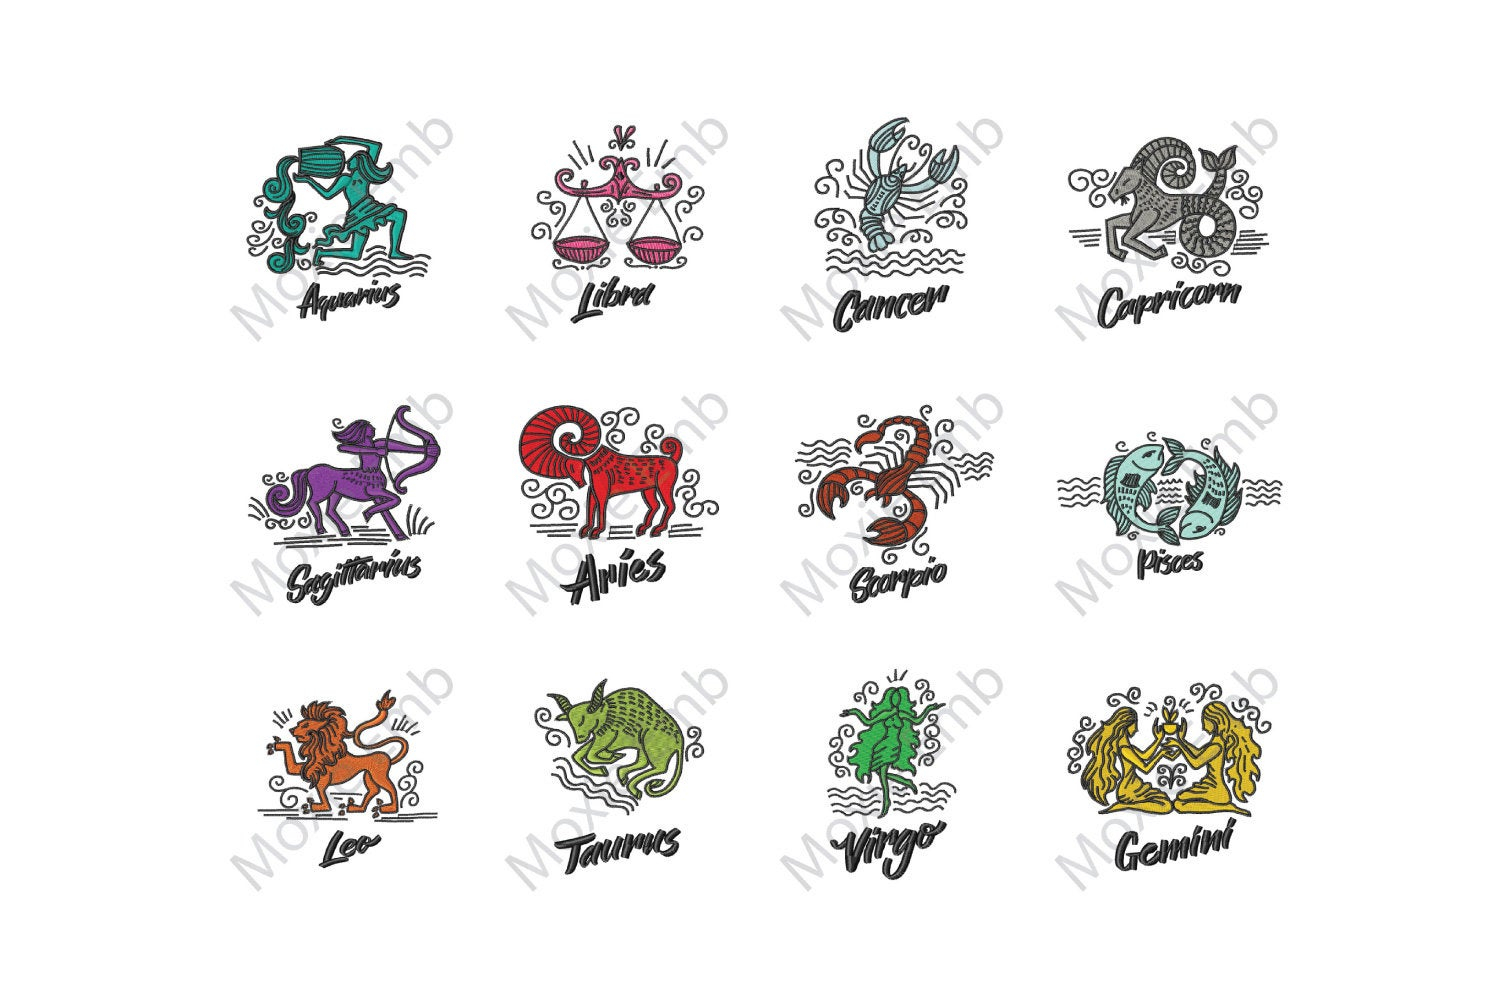 Patterns For Embroidery Machine Zodiac Bundle 12 Designs Machine Embroidery Design Embroidery Patterns Embroidery Files Instant Download